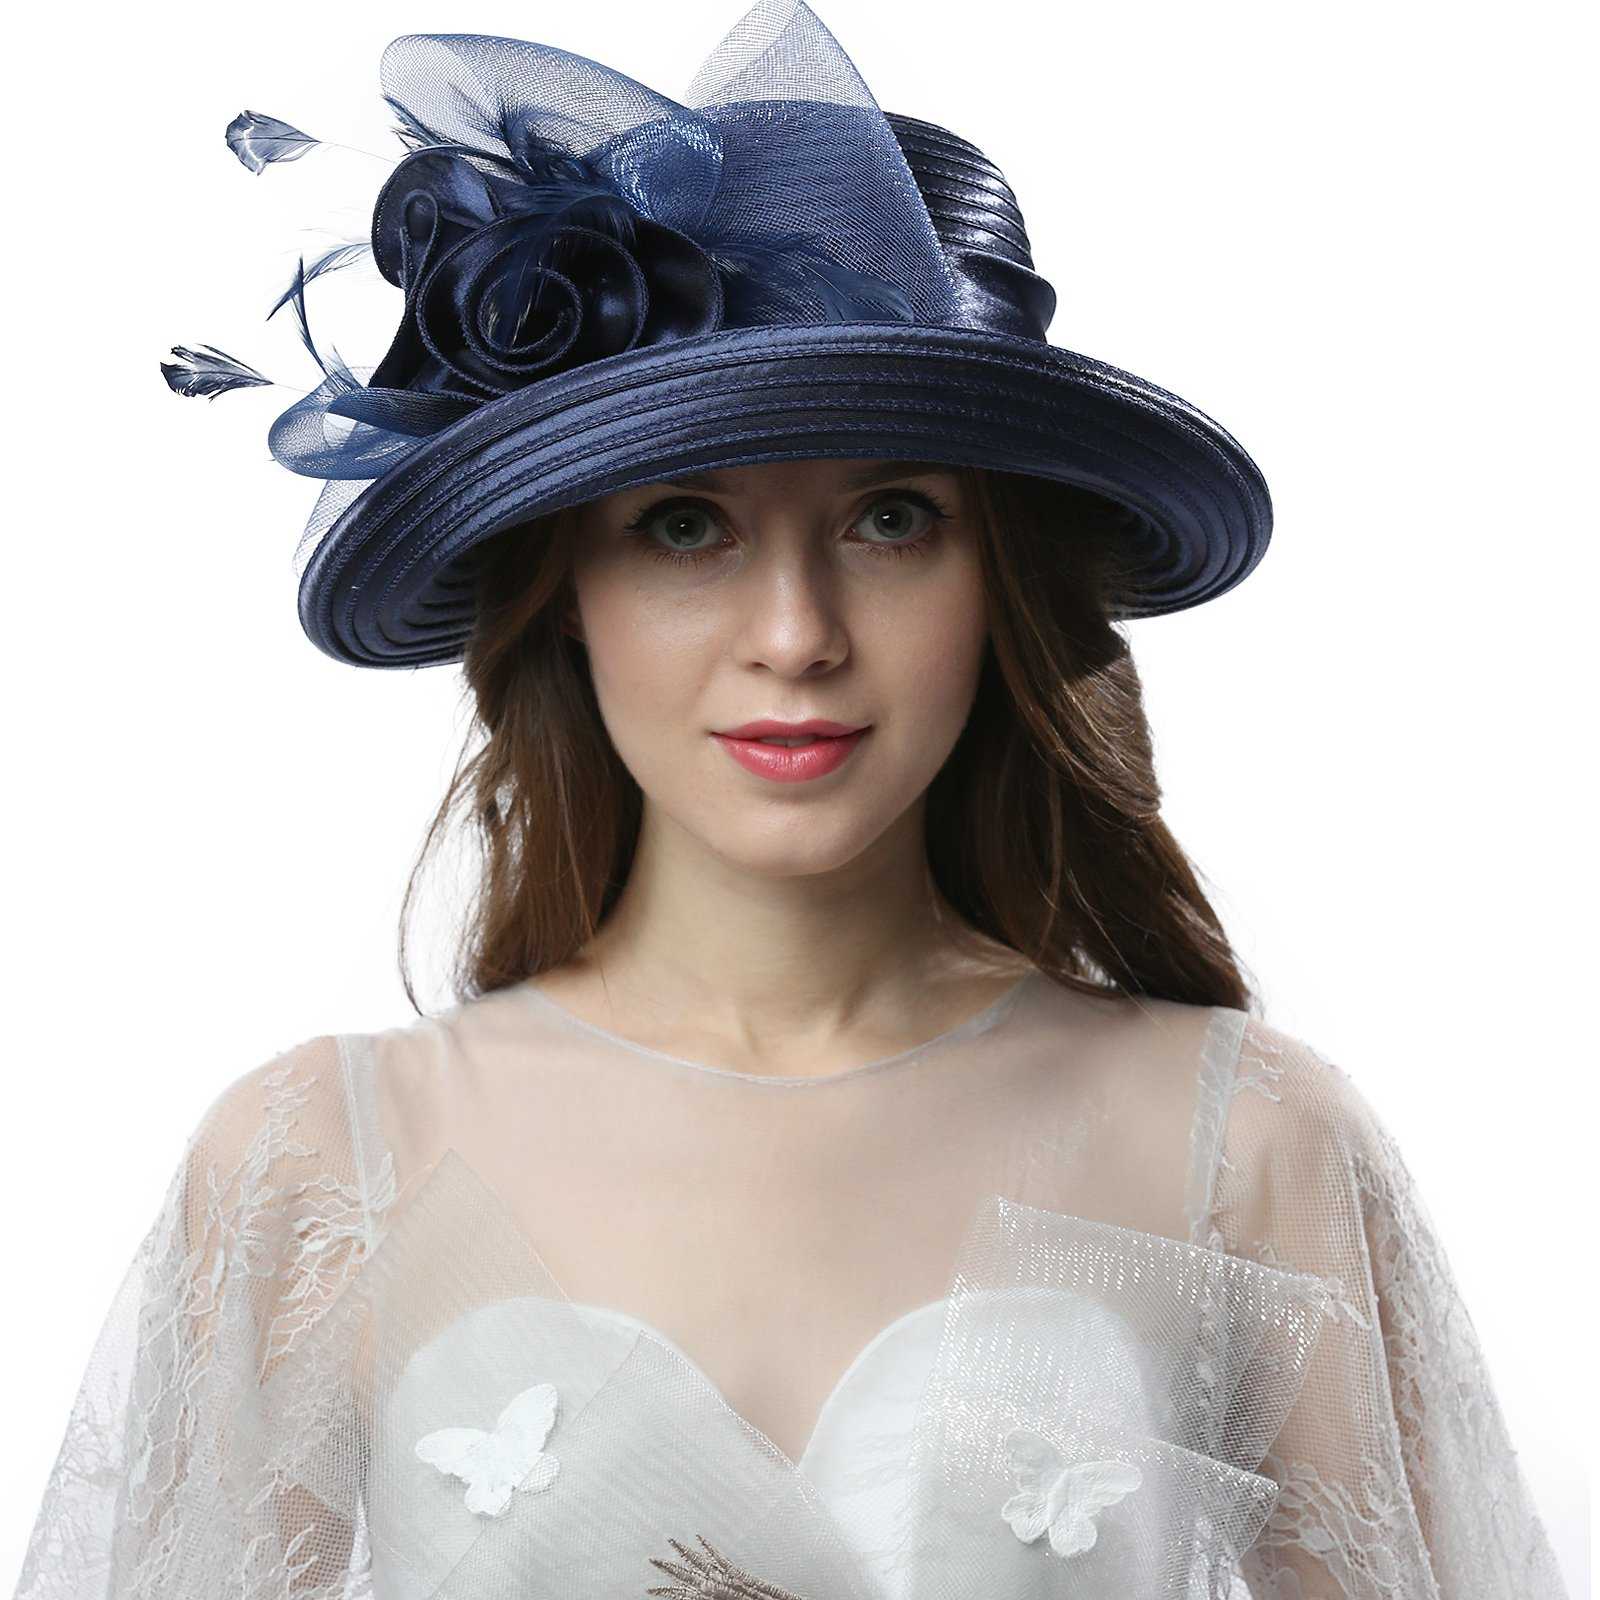 Original One Women's Cloche Bowler Hats KDC1701 For Kentucky Derby Day, Church, Wedding, Tea Party and More Formal Occasion (Royal Blue)